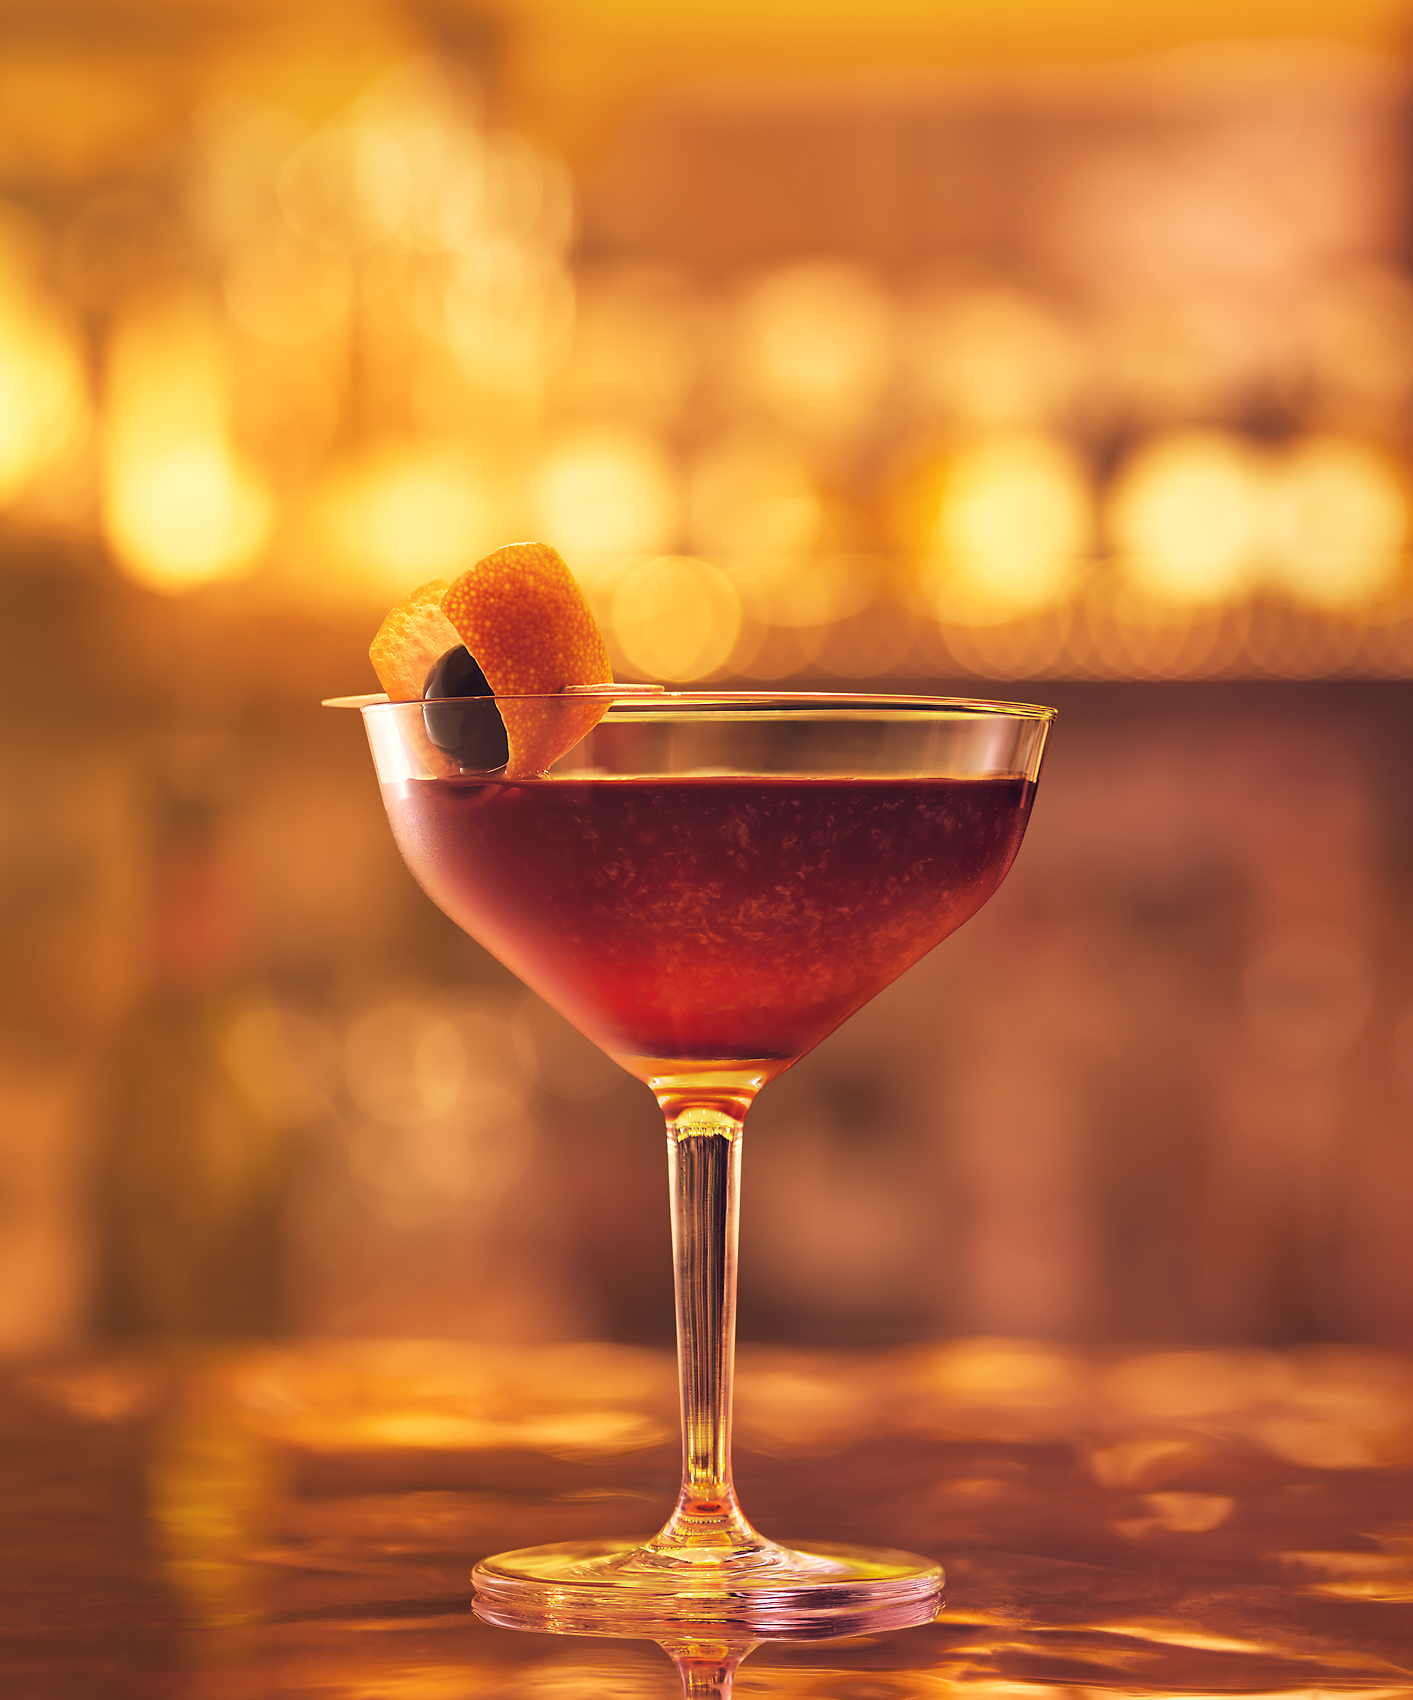 Nick_Rees-Drinks-01-MeleePere_MARTINEZ